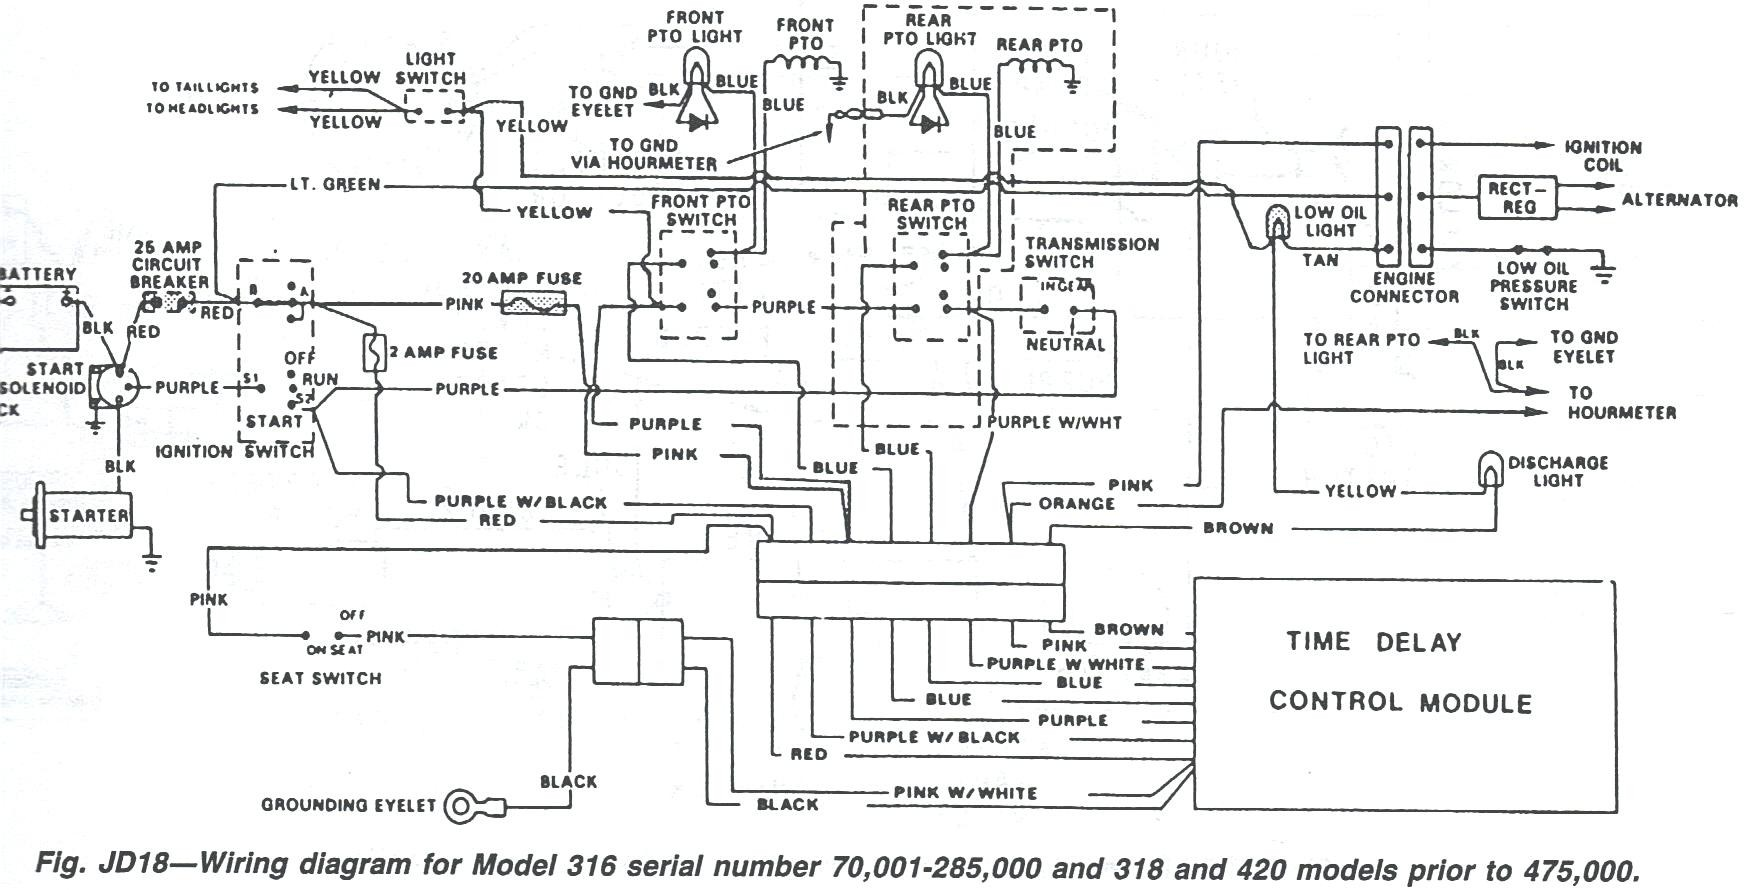 "Wiring Diagram For John Deere 4020 - Wiring Diagram 500 on john deere 345 diagram, john deere repair diagrams, john deere rear end diagrams, john deere electrical diagrams, john deere fuse box diagram, john deere fuel gauge wiring, john deere 3020 diagram, john deere voltage regulator wiring, john deere 42"" deck diagrams, john deere starters diagrams, john deere 310e backhoe problems, john deere power beyond diagram, john deere gt235 diagram, john deere tractor wiring, john deere riding mower diagram, john deere chassis, john deere cylinder head, john deere sabre mower belt diagram, john deere 212 diagram, john deere fuel system diagram,"